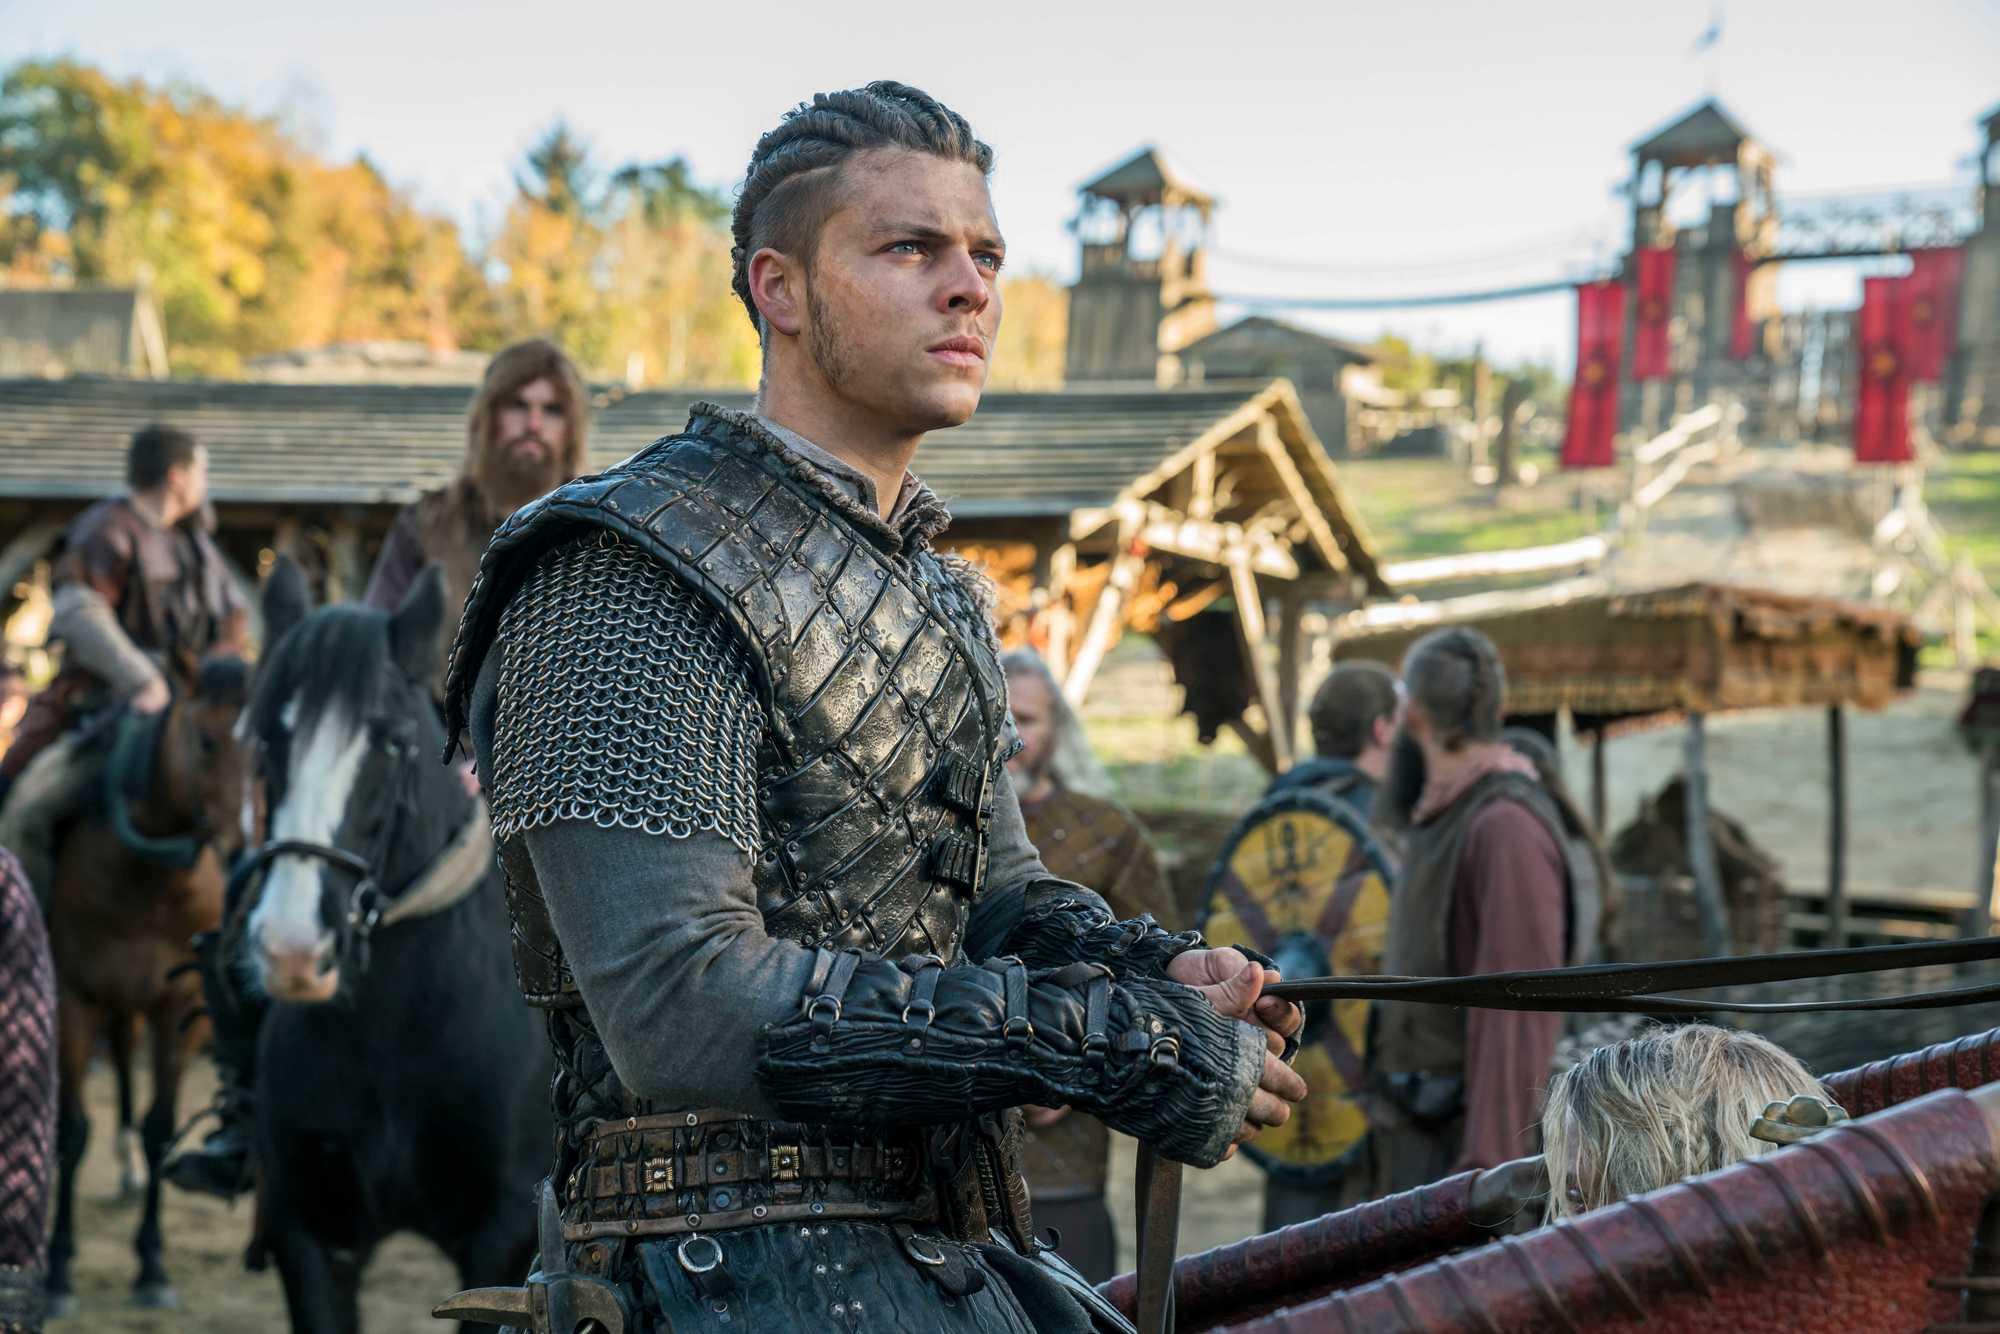 Viking Hairstyles: Vikings character with twisted back cornrows with undercut, wearing costume on set of Vikings